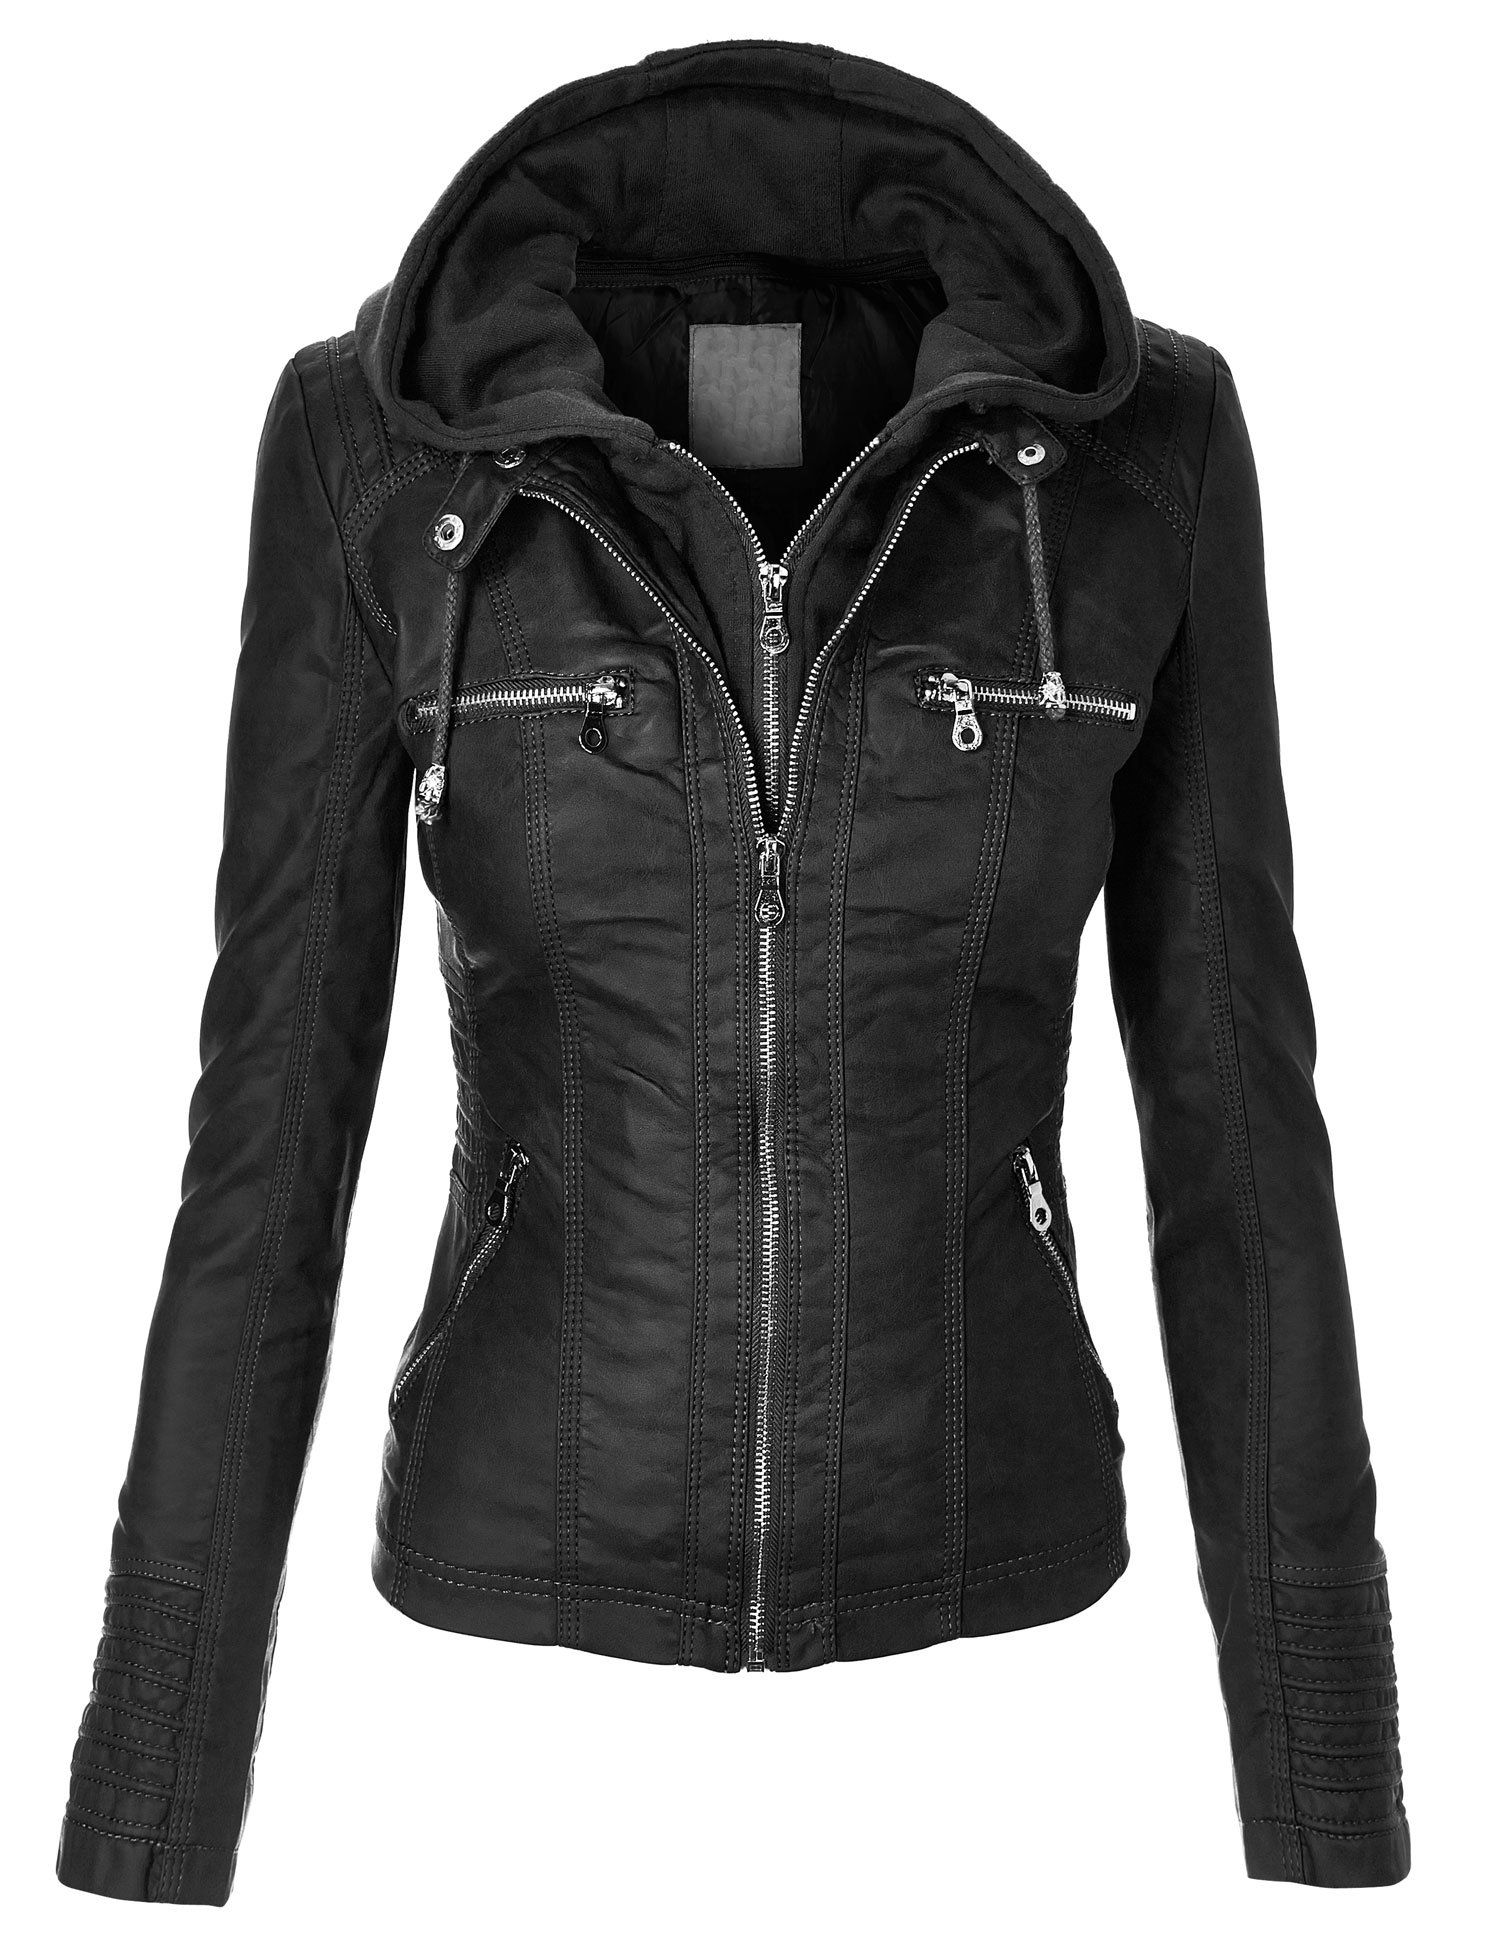 MBJ Womens Faux Leather Zip Up Moto Biker Jacket With